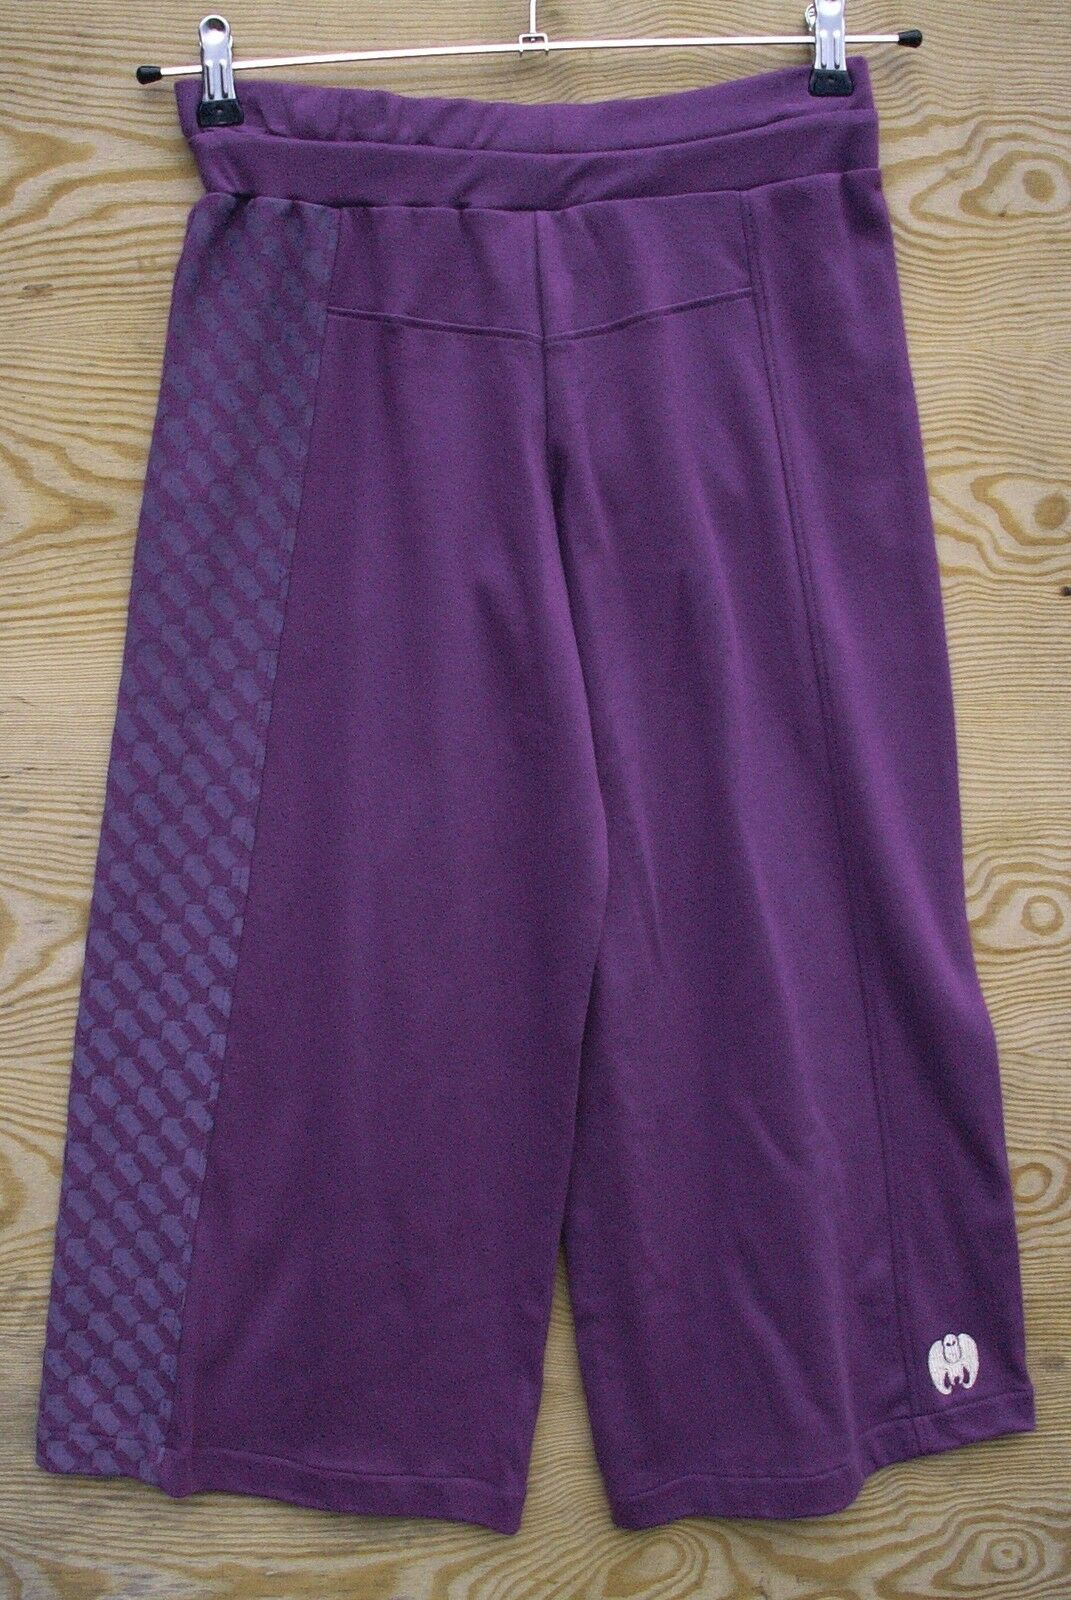 Monkee 3 4 Pants for Ladies for Climbing and fitnesssport